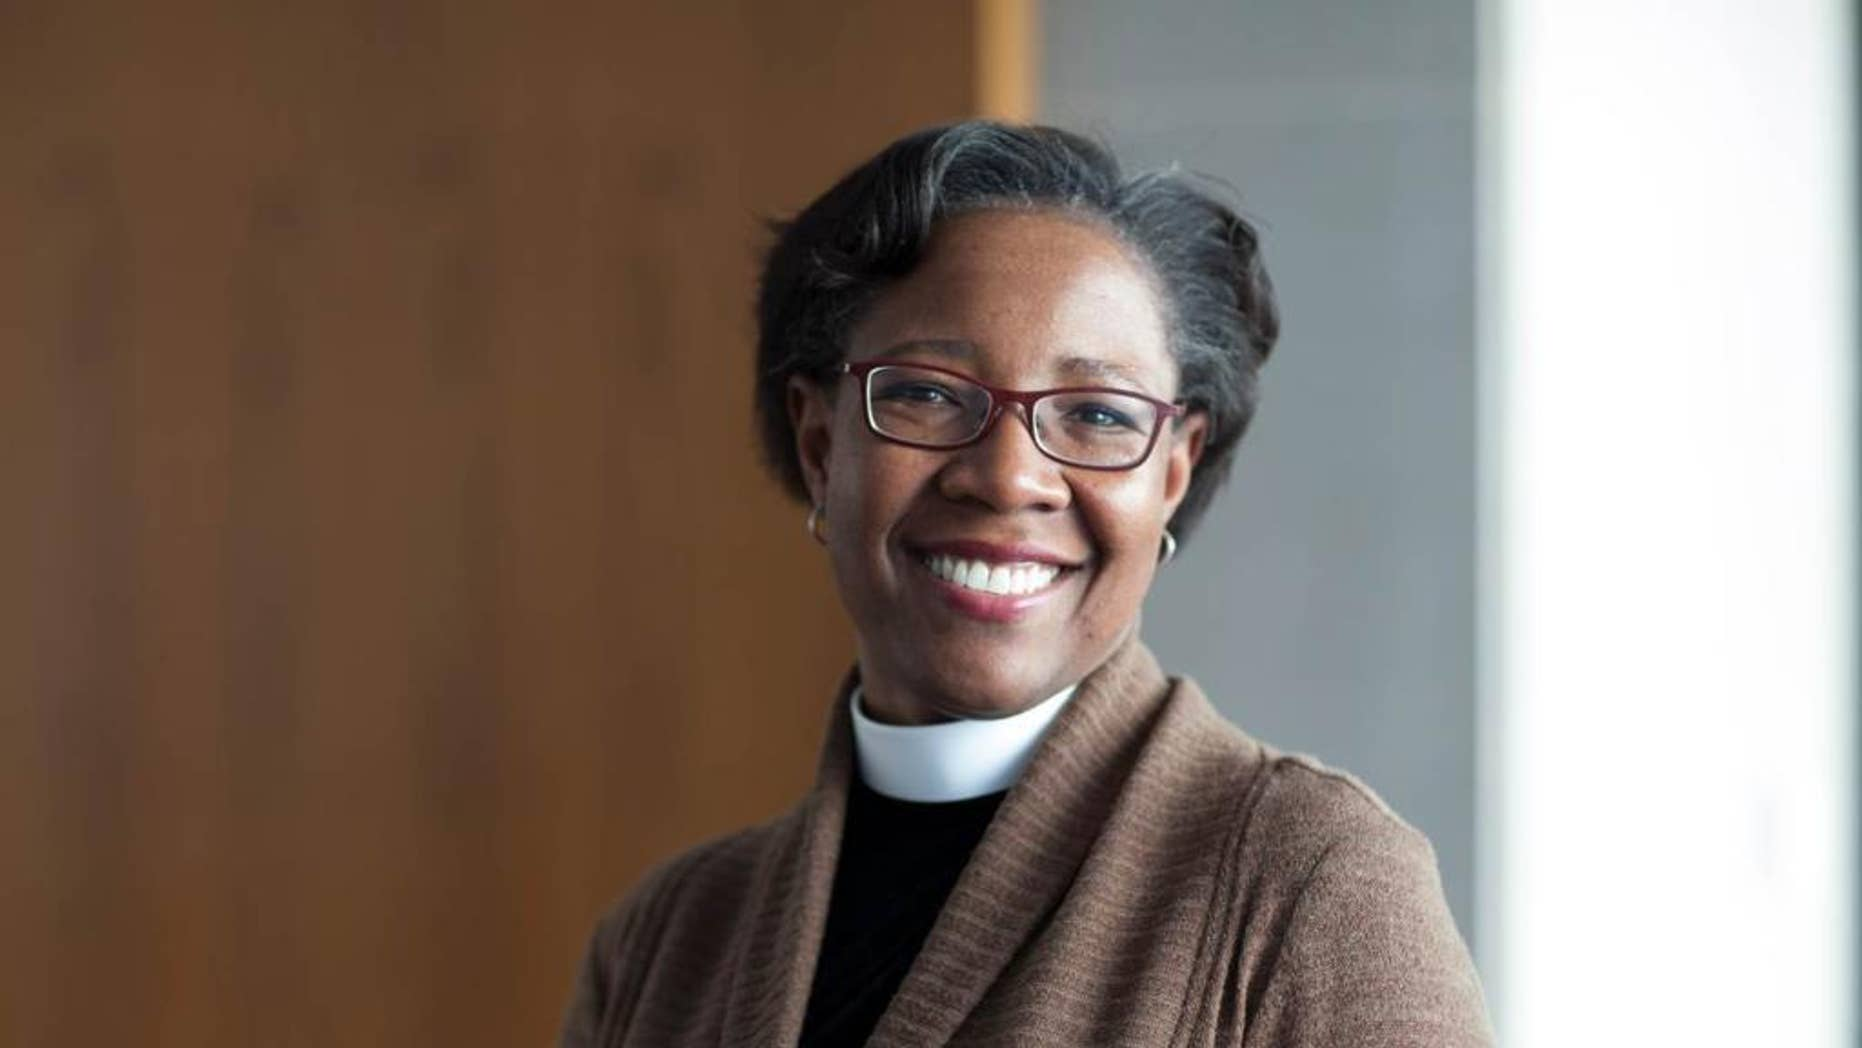 This undated photo provided by Charlie Simokaitis shows the Rev. Jennifer Baskerville-Burrows. The Episcopal Church has elected the first black woman to lead one of its dioceses. The Rev. Jennifer Baskerville-Burrows was elected Friday, Oct. 28, 2016 to head the Diocese of Indianapolis. (Charlie Simokaitis via AP)